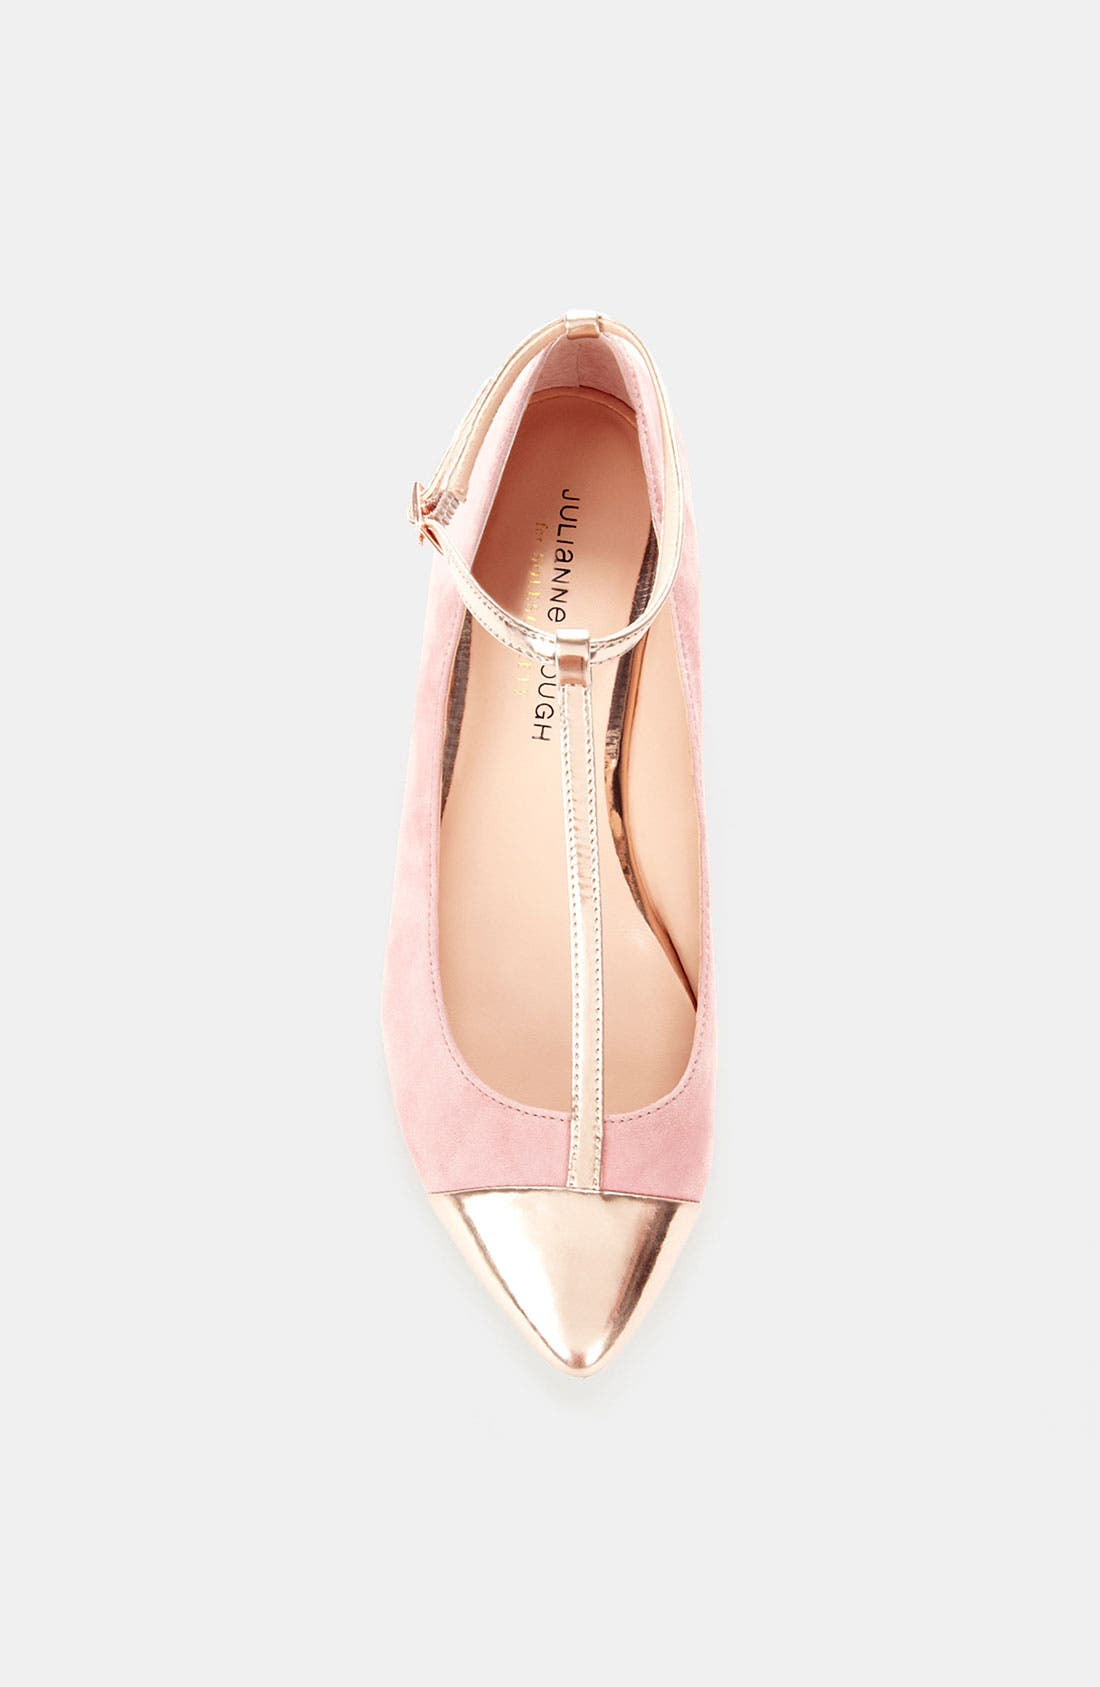 ,                             Julianne Hough for Sole Society 'Addy' Flat,                             Alternate thumbnail 38, color,                             680